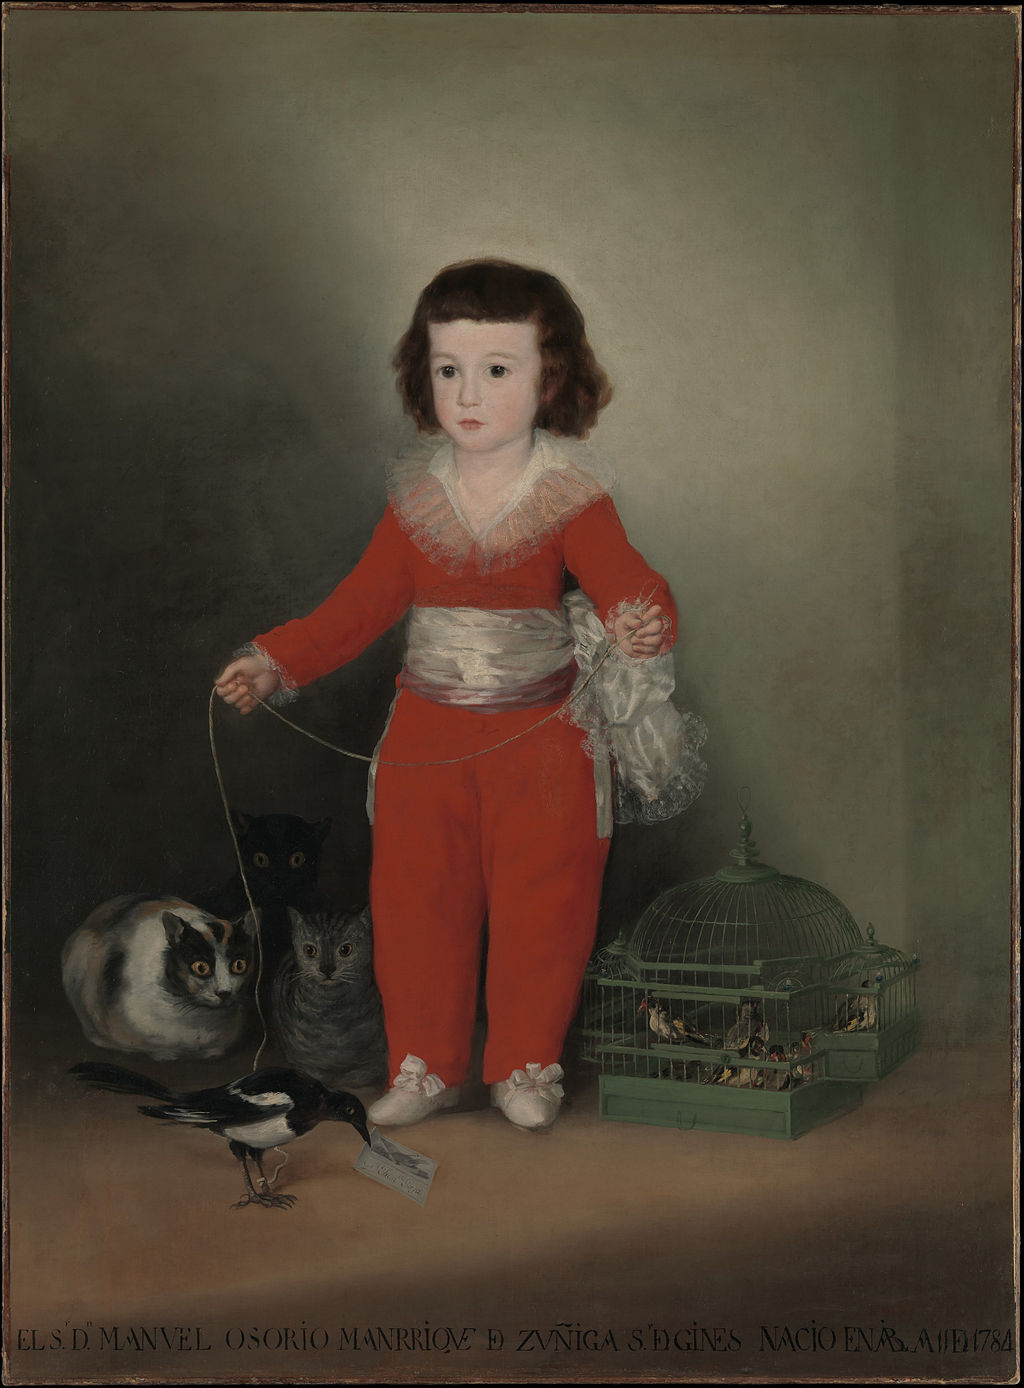 Goya, 1784. A skeleton suit or similar outfit.